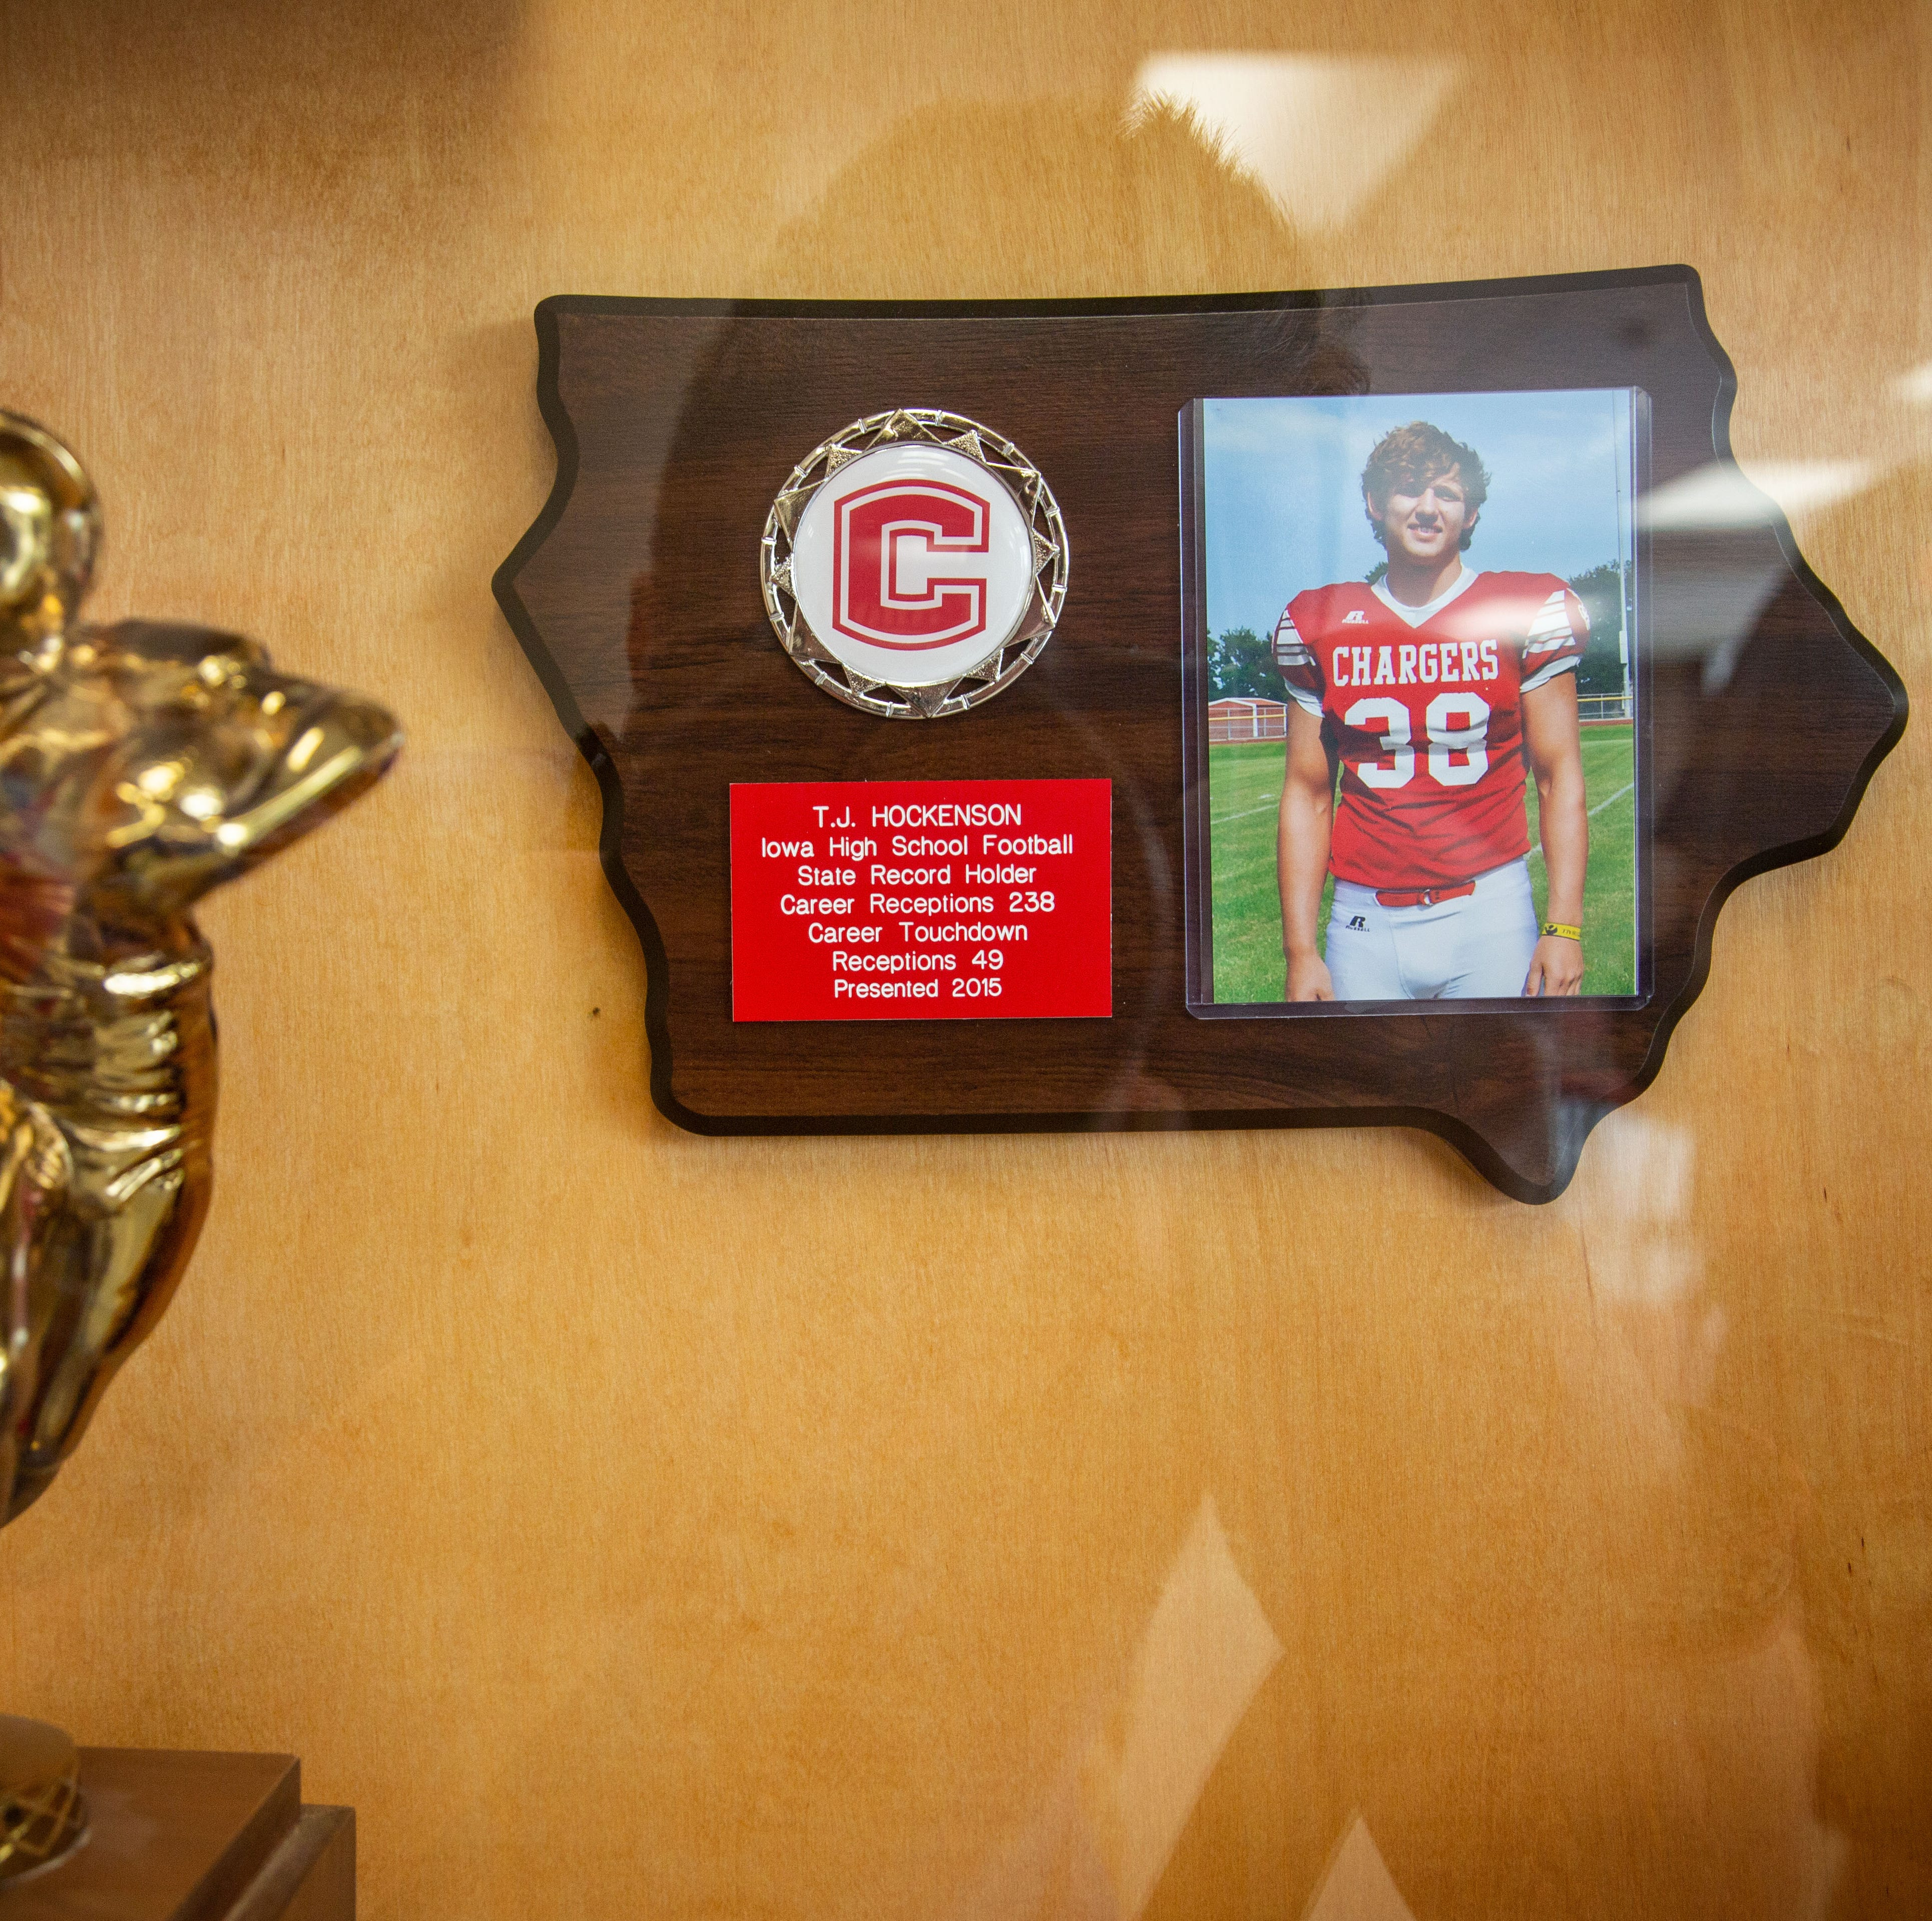 NFL Draft pick T.J. Hockenson is the pride of Chariton, especially this week